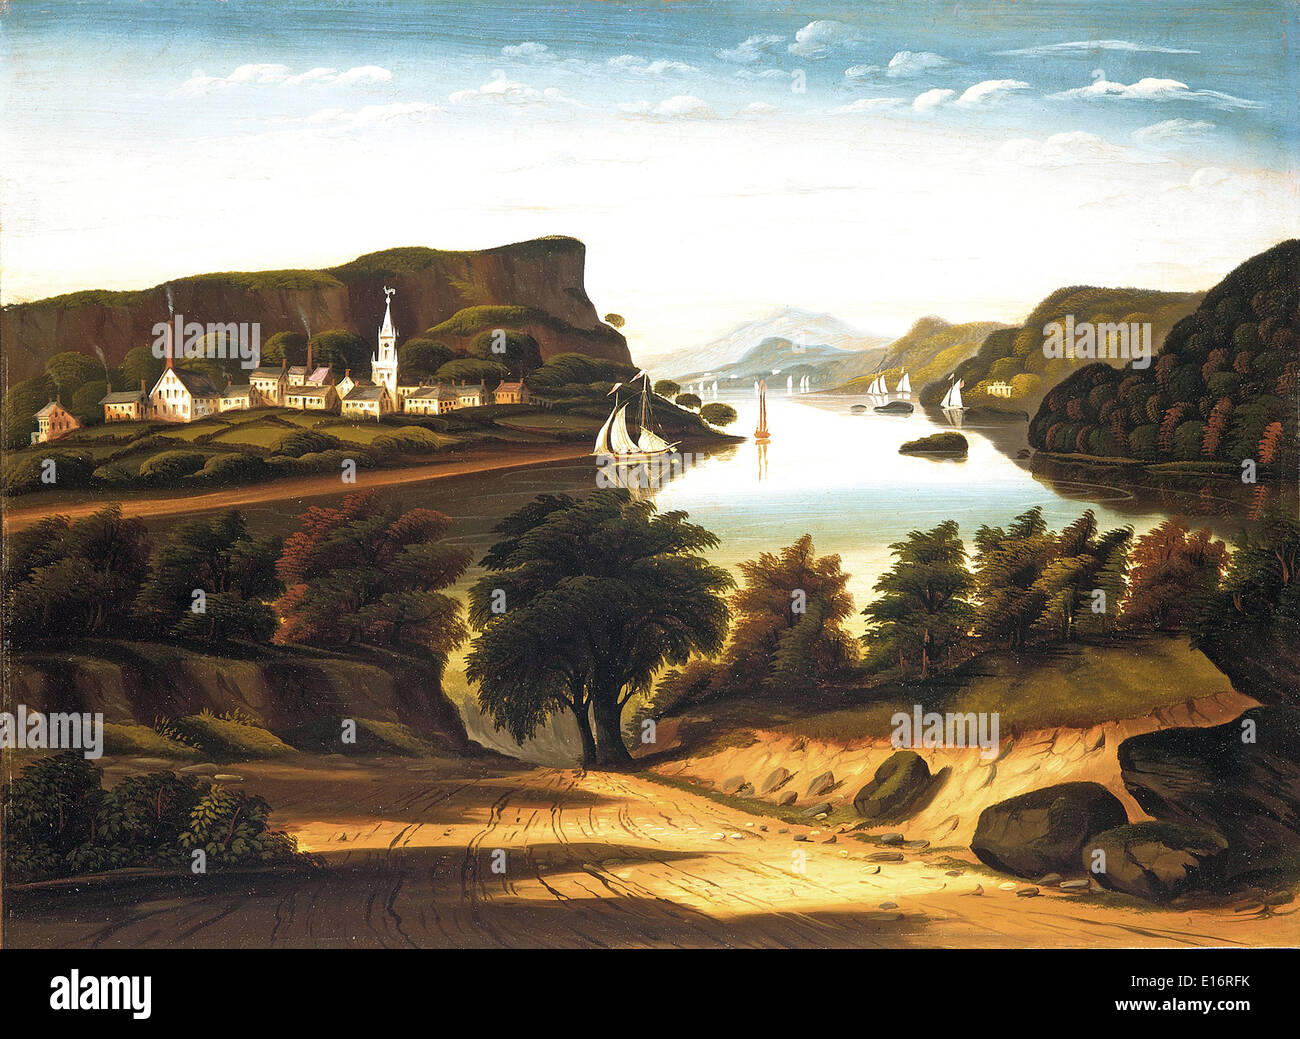 Lake George and the Village of Caldwell by Thomas Chambers, 1850's - Stock Image